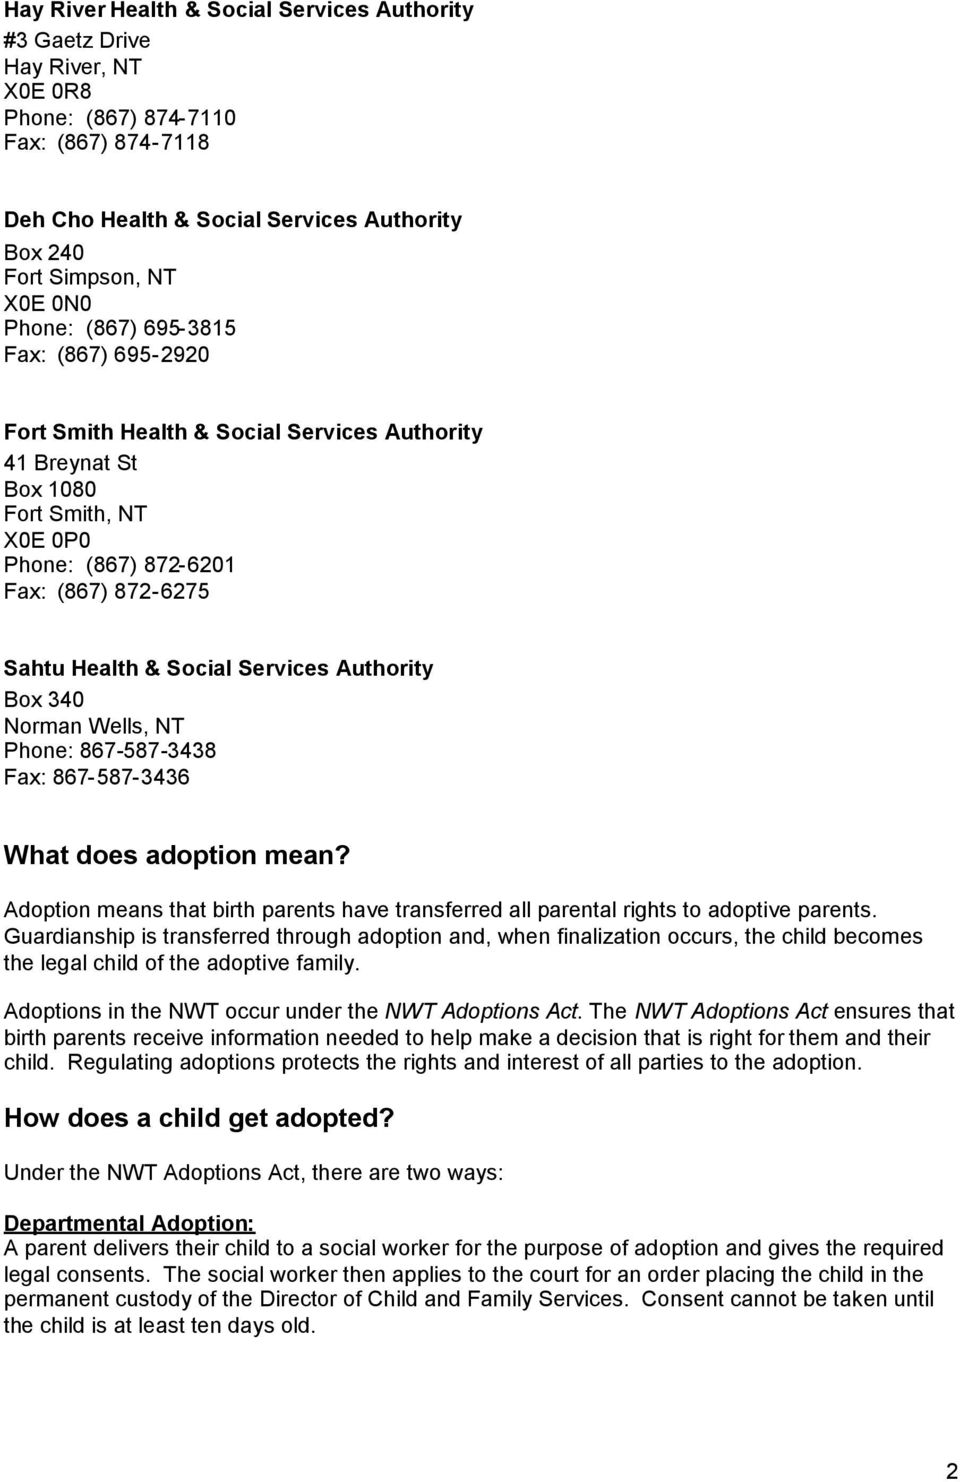 Services Authority Box 340 Norman Wells, NT Phone: 867-587-3438 Fax: 867-587-3436 What does adoption mean? Adoption means that birth parents have transferred all parental rights to adoptive parents.